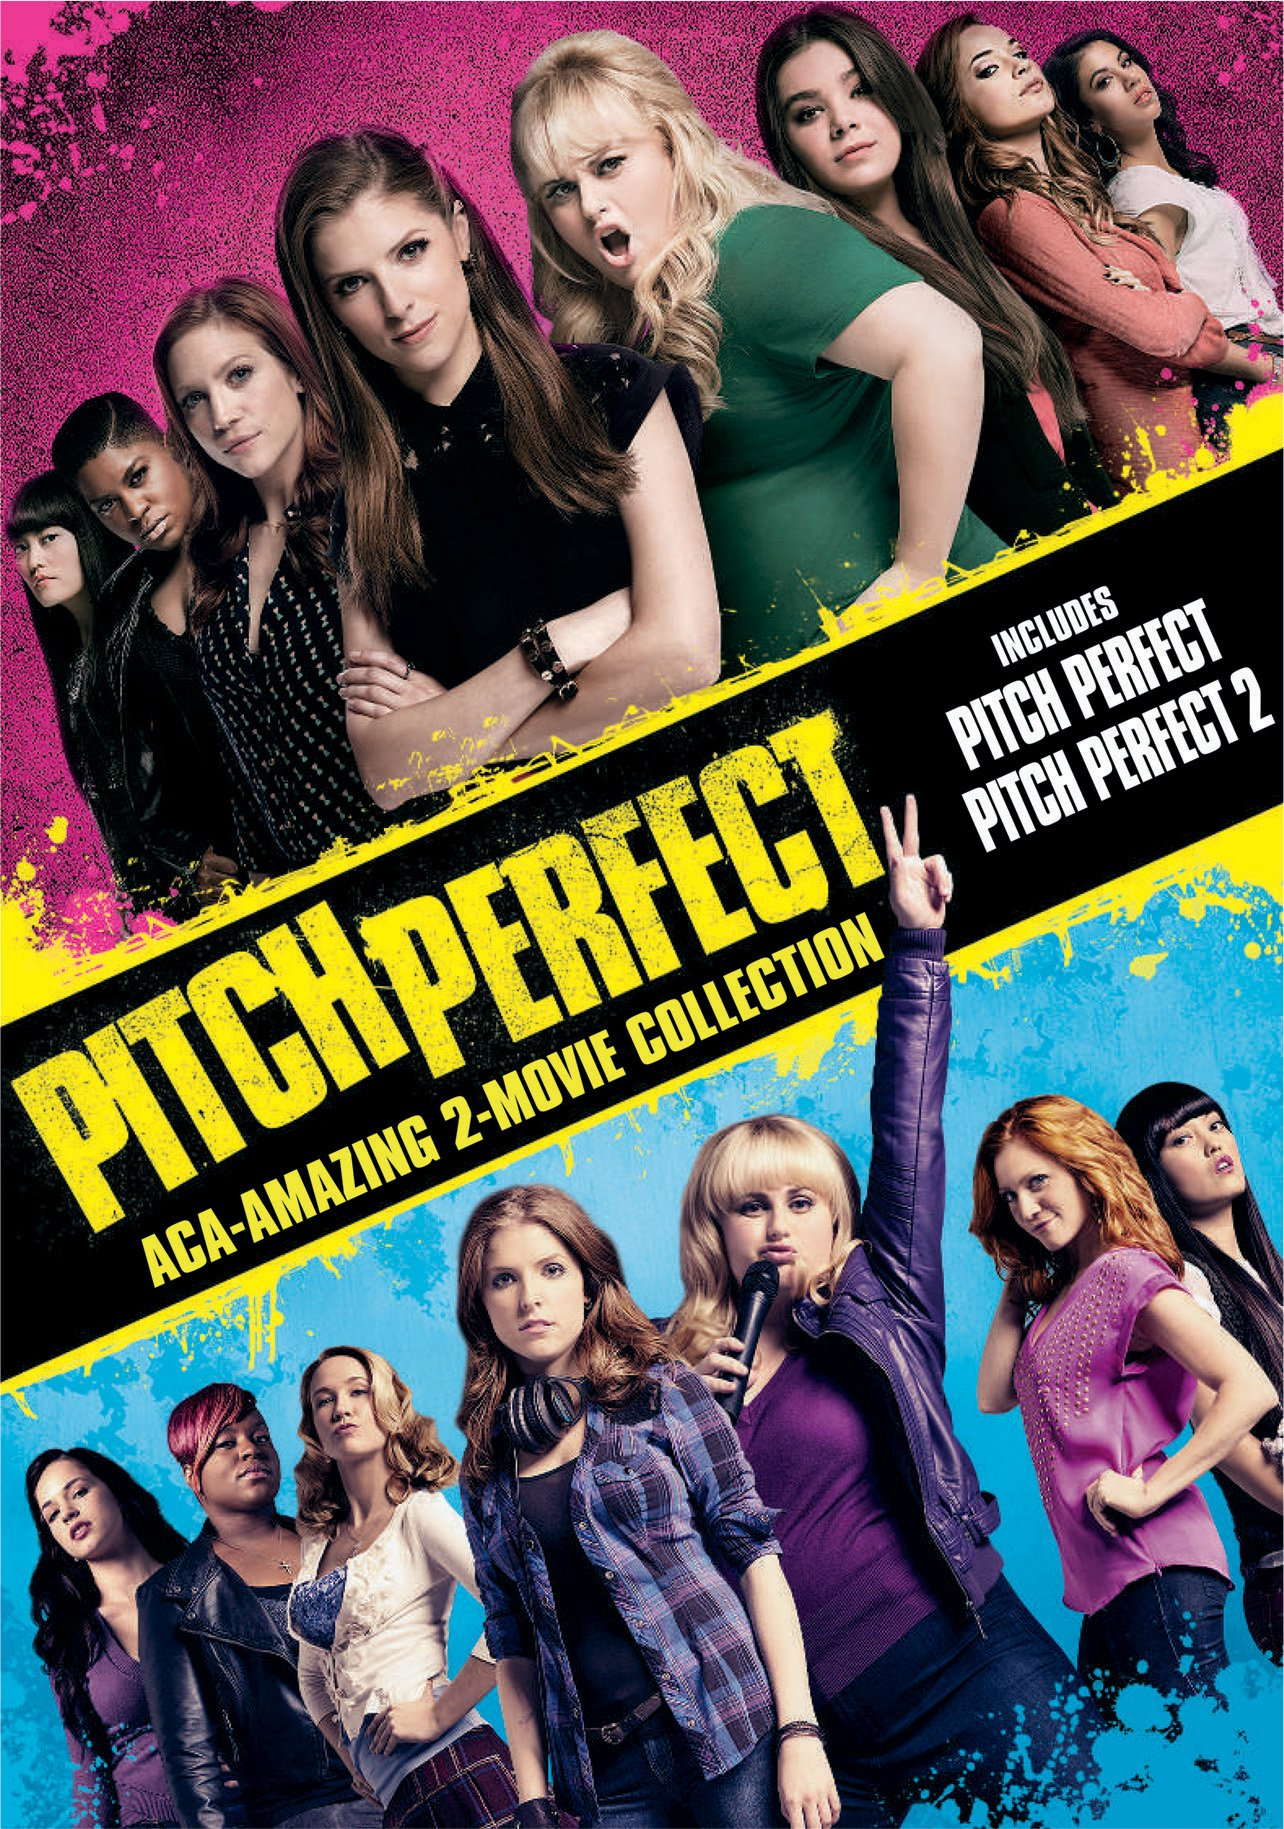 DVD : Pitch Perfect: Aca-Amazing 2-Movie Collection (2 Pack, Snap Case, Slipsleeve Packaging, 2 Disc)